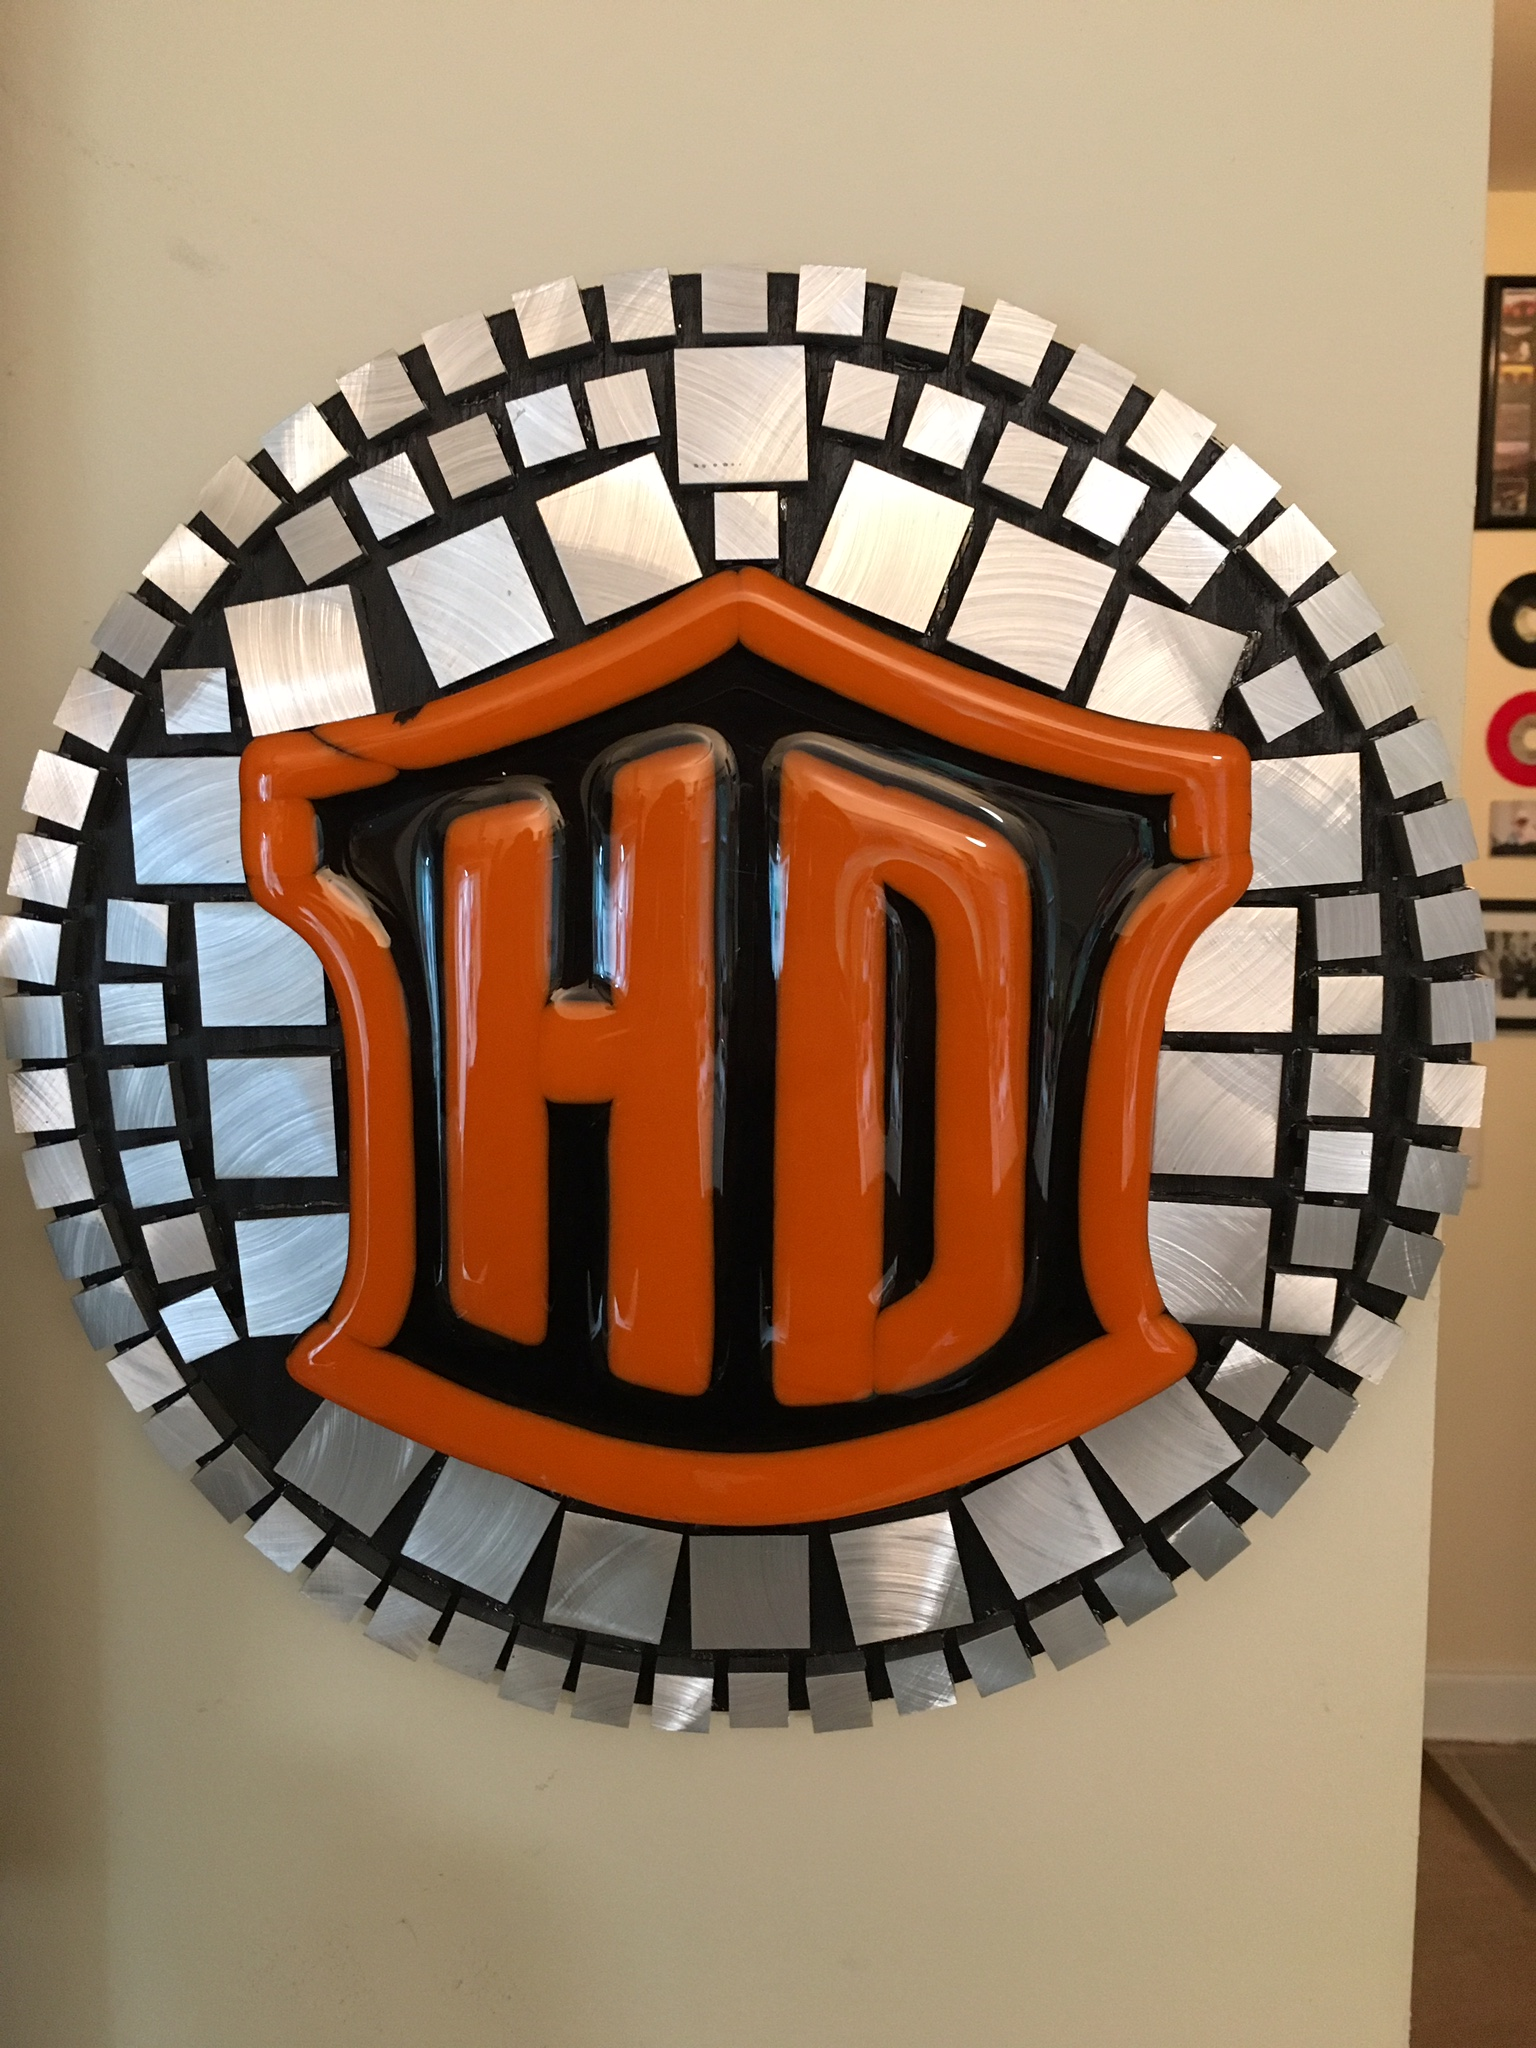 Harley Davidson logo stained glass